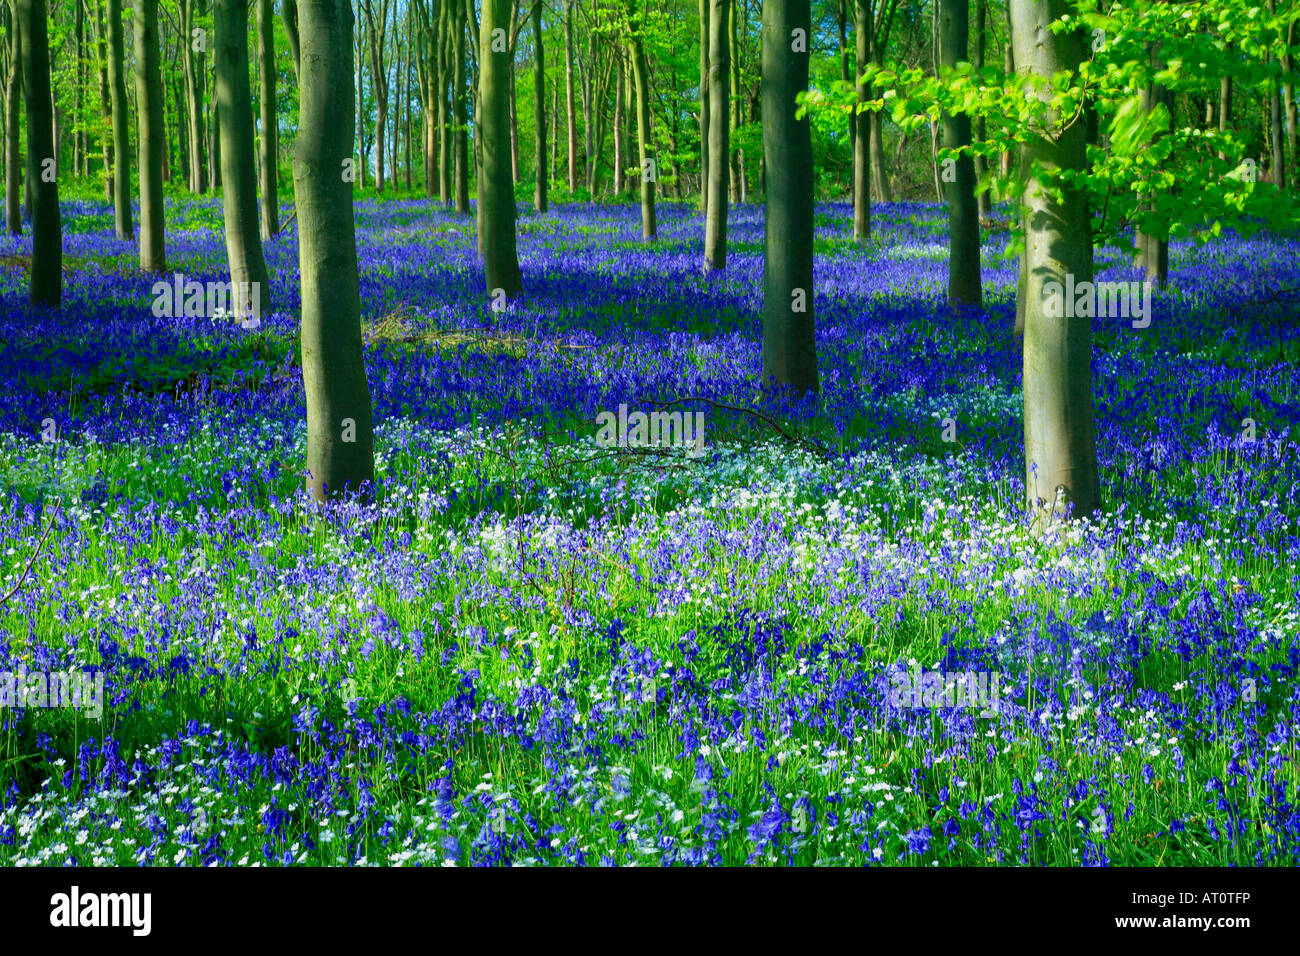 Bluebell Wild Spring Flowers Hyacinthoides Non Scripta In A Woodland